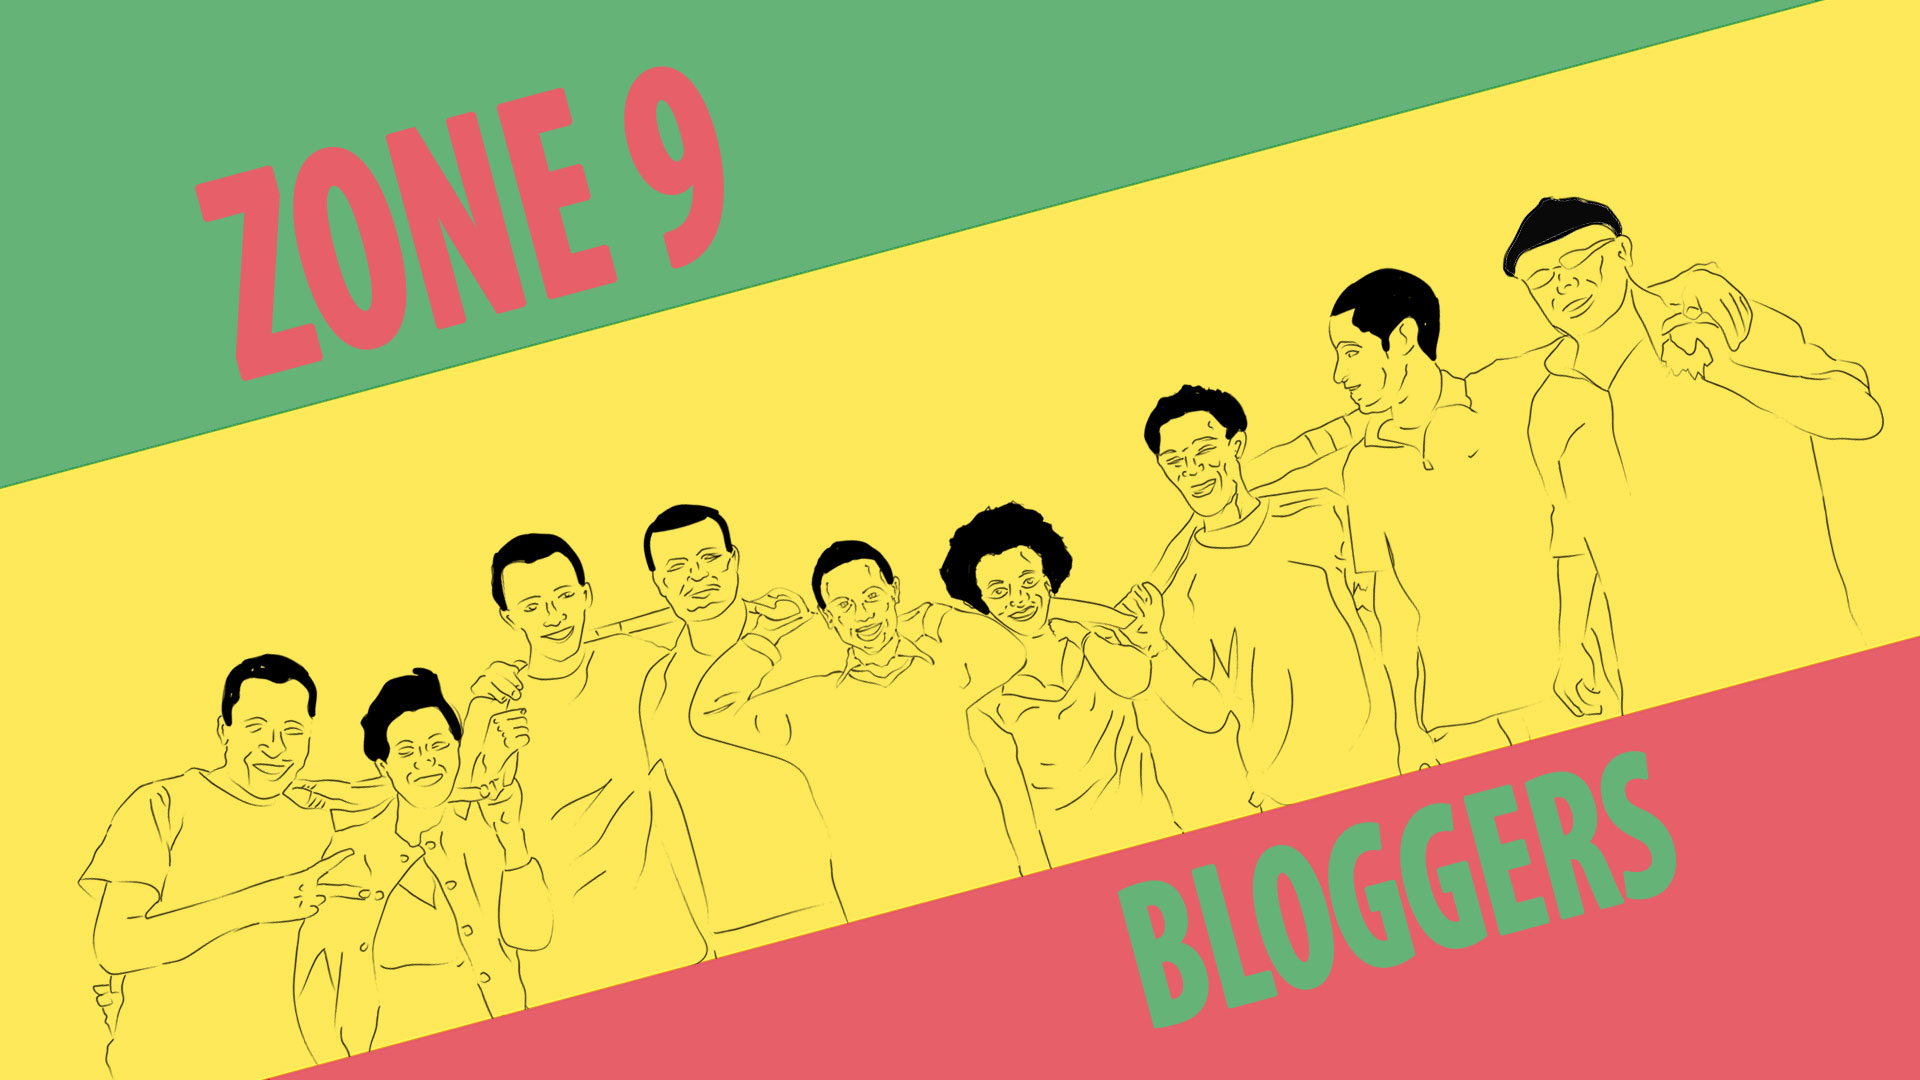 How Ethiopia's Zone 9 Bloggers Represent the Struggle for a Free and Open Press